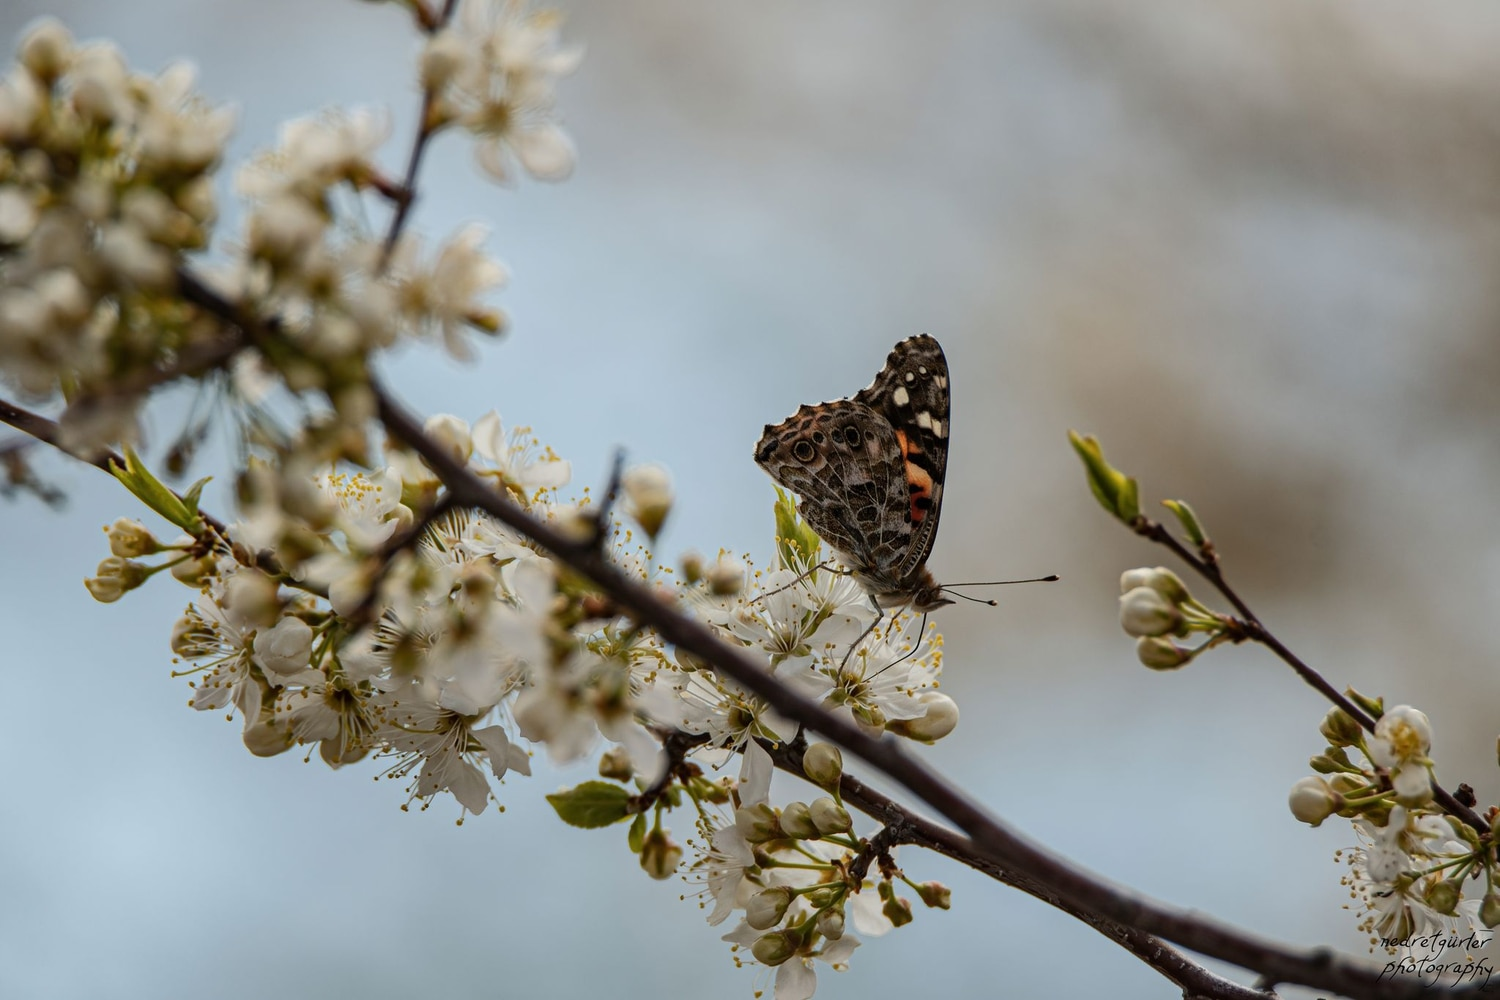 Fruit trees like this plum benefit from pollinators like the painted lady | Photo by Nedret Gürler